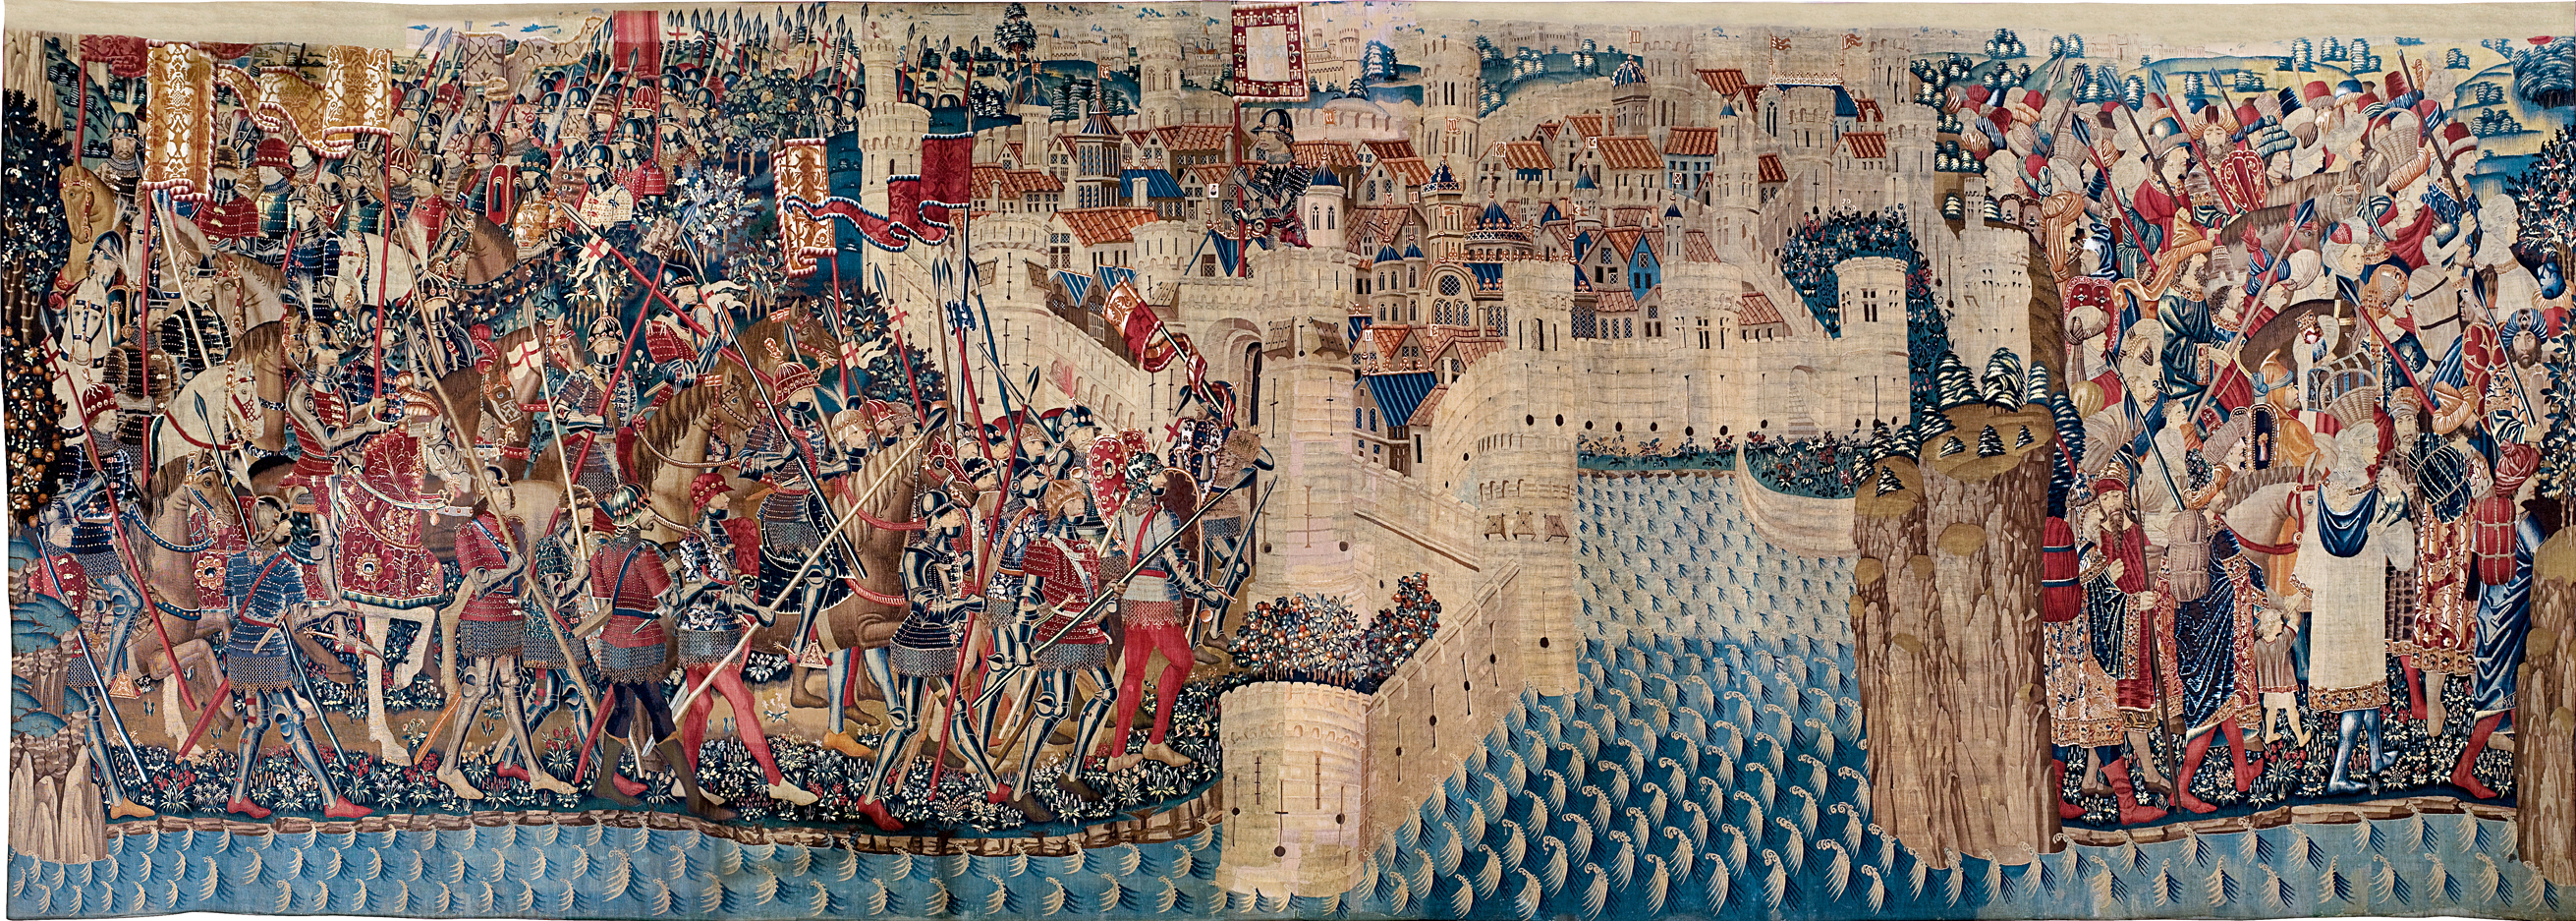 The Conquest of Tangier